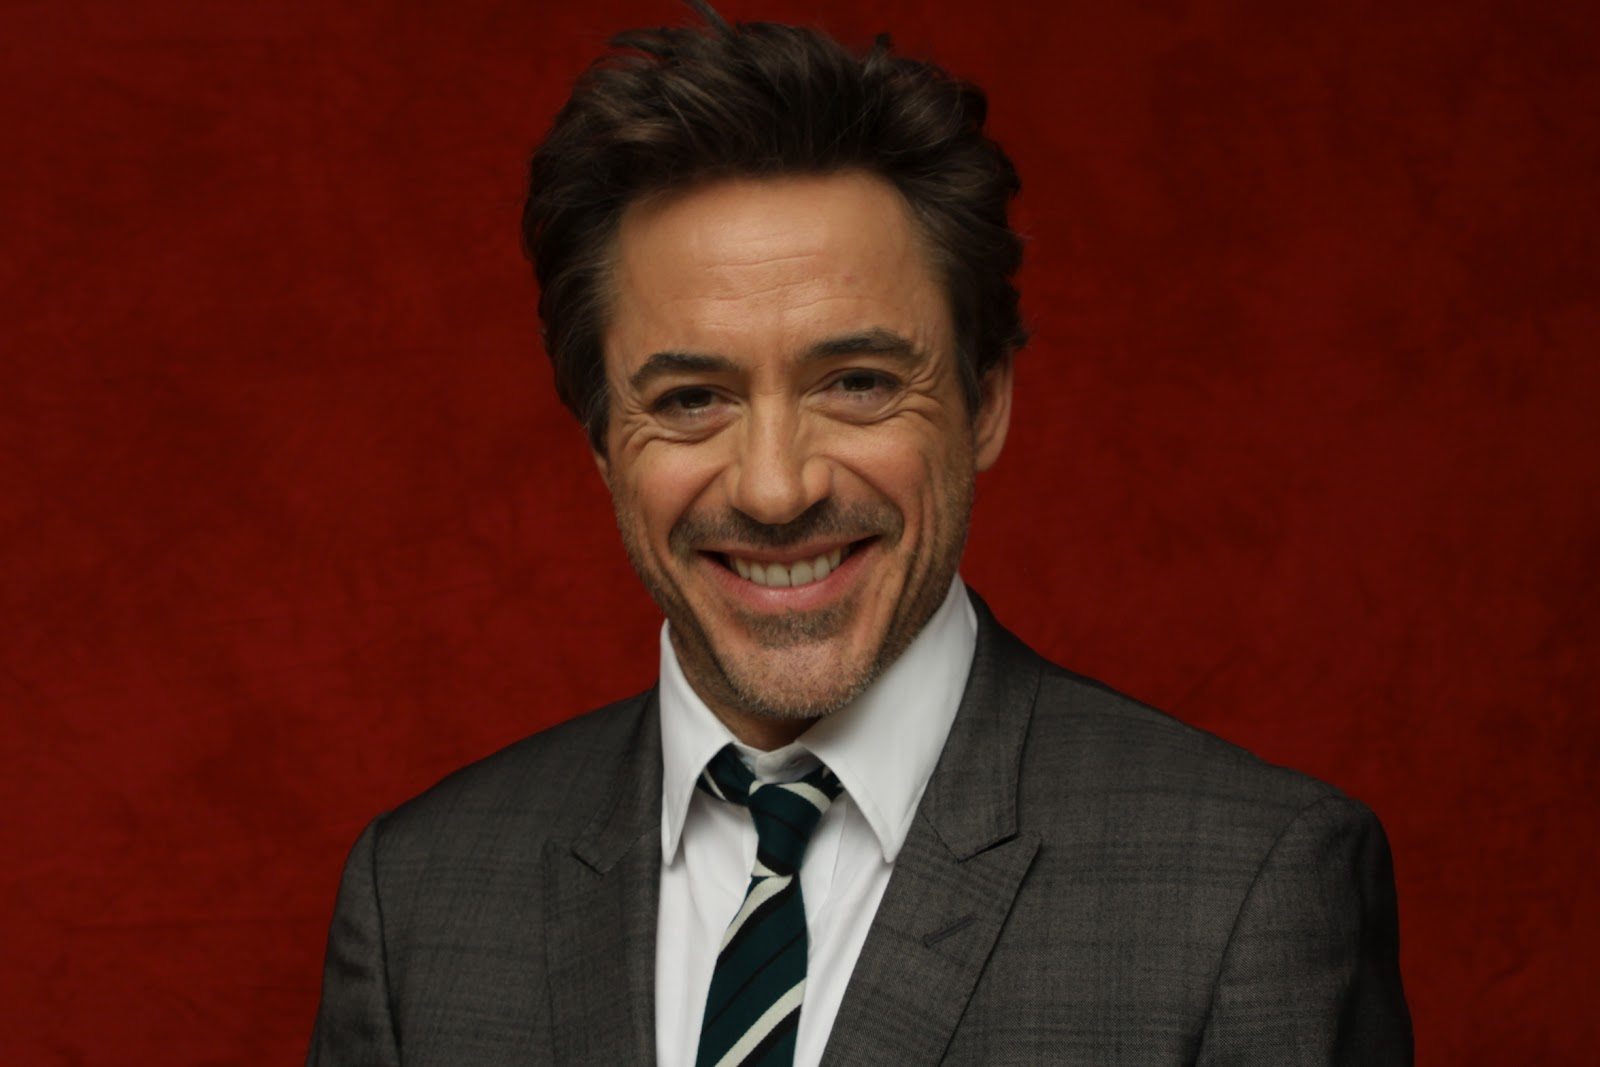 Image result for Robert Downey Jr. blogspot.com